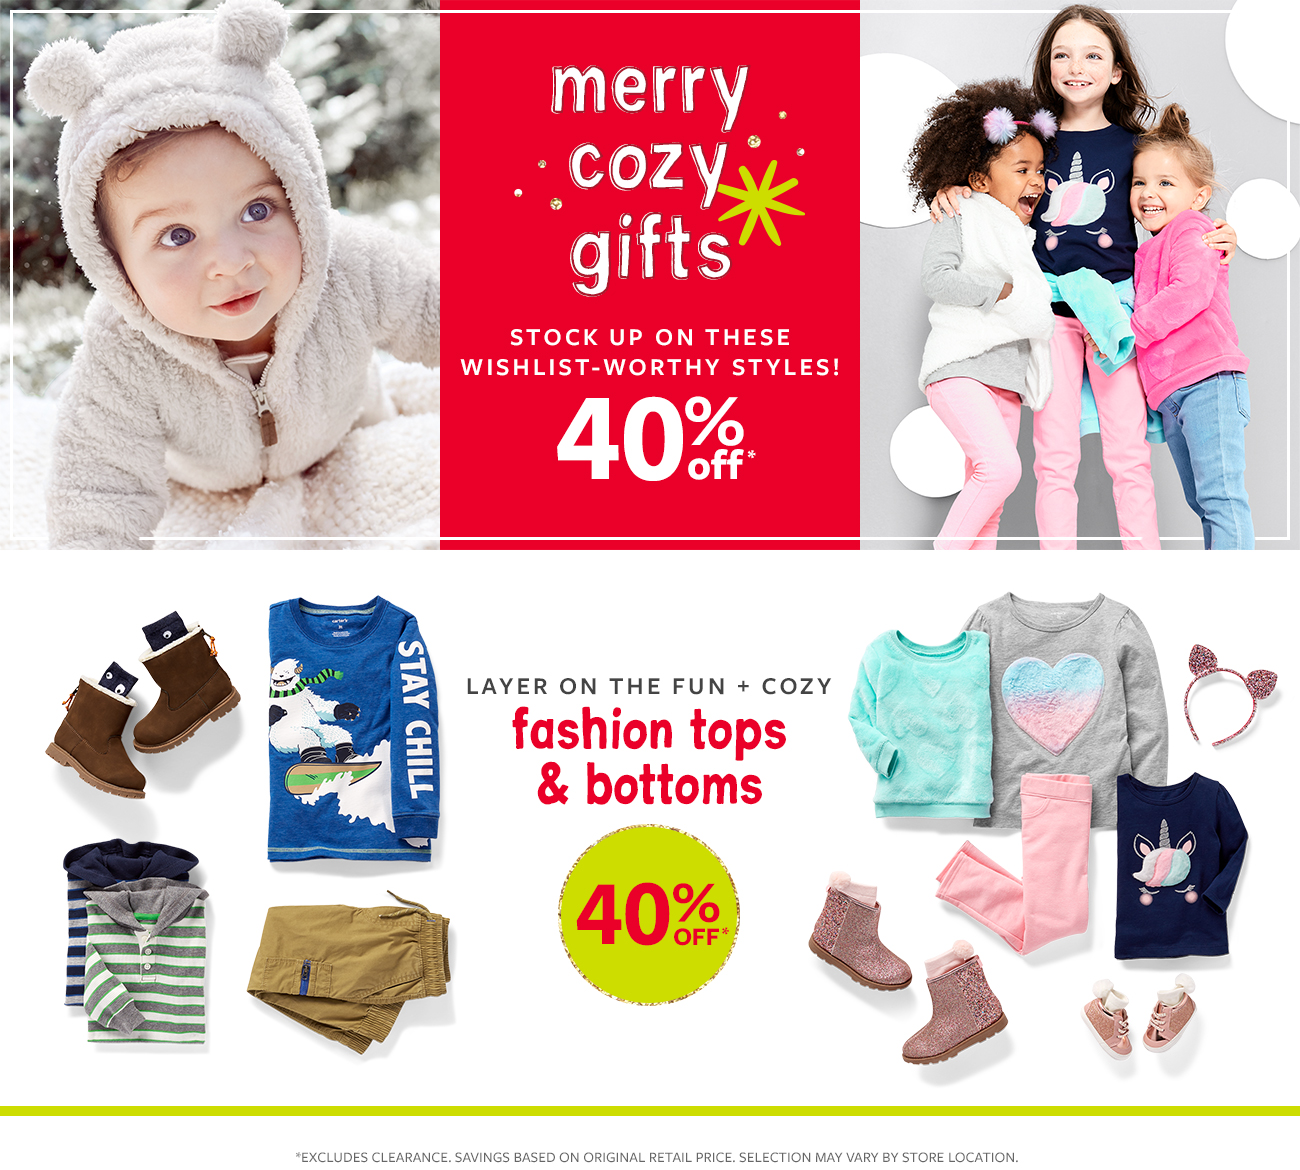 merry cozy gifts stock up on these wishlist-worthy styles! 40% off